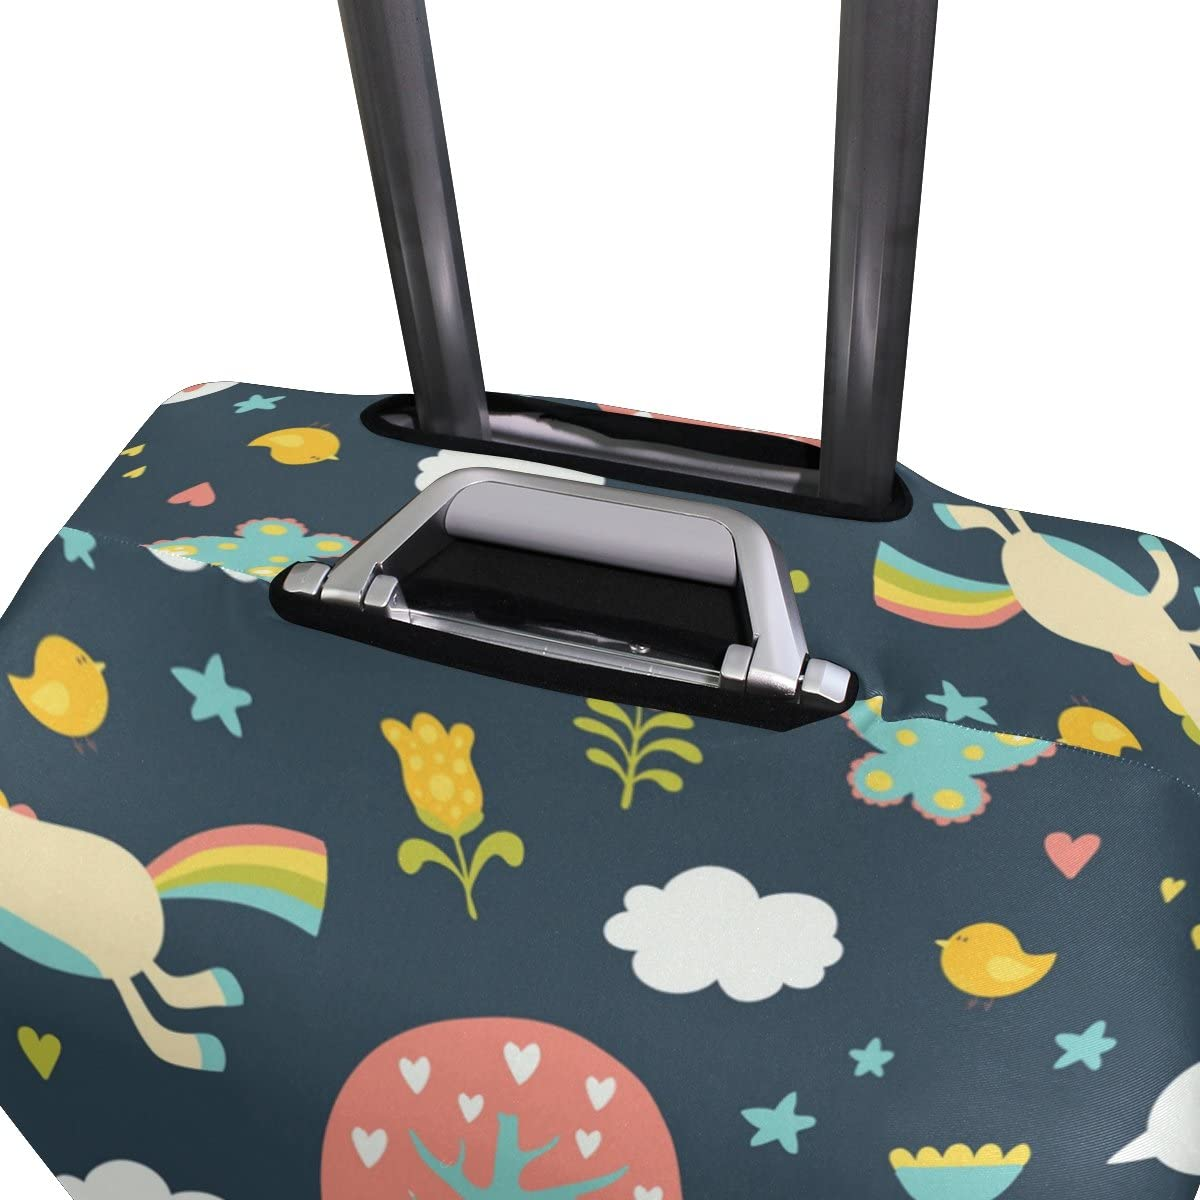 OREZI Luggage Protector Cute Unicorn Love Tree Travel Luggage Elastic Cover Suitcase Washable and Durable Anti-Scratch Stretchy Case Cover Fits 18-32 Inches